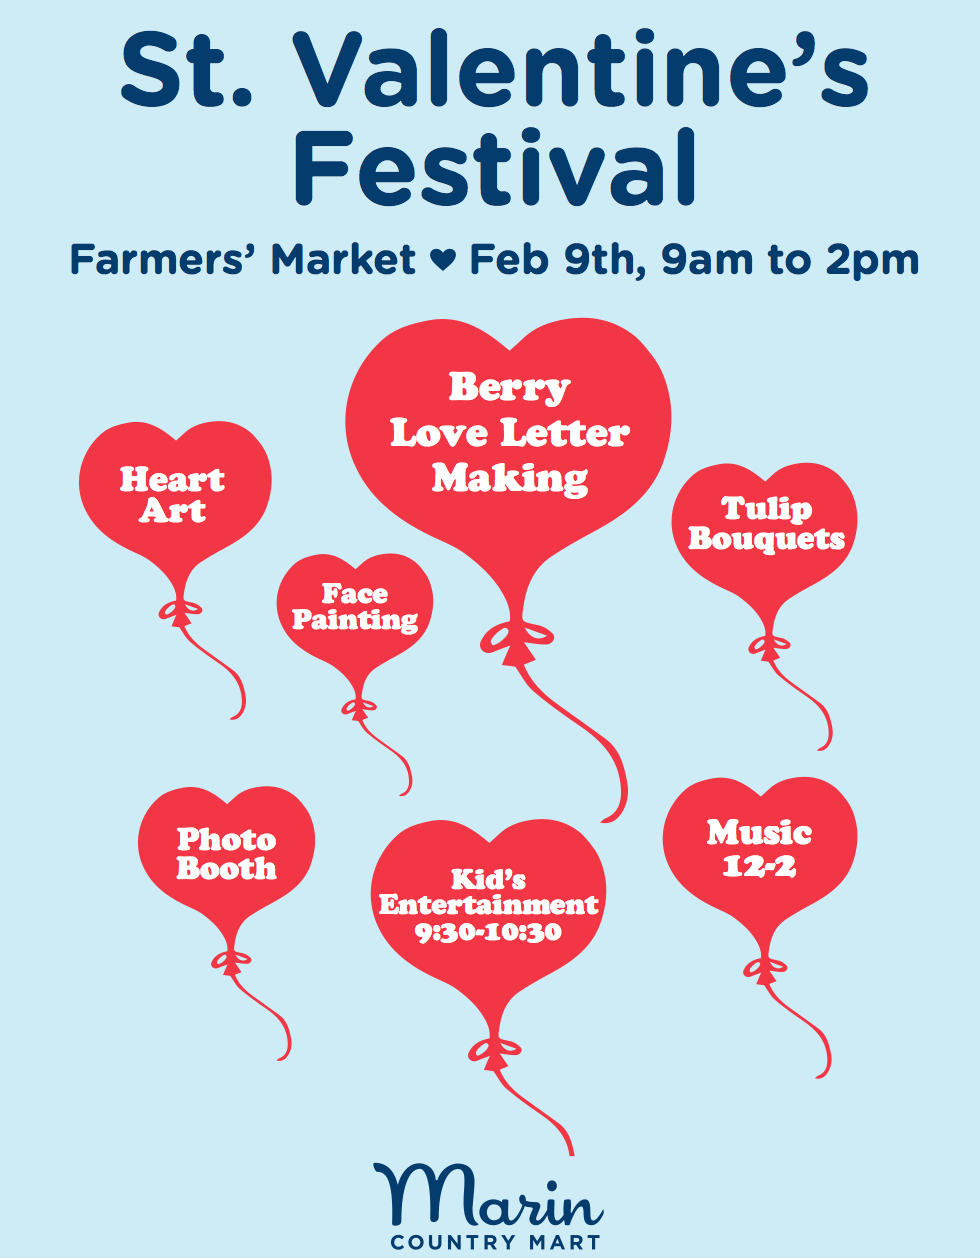 ST. VALENTINE FESTIVALat the Farmer's Market! - FEBRUARY 9, 9am-2pmMeet us at the Farmer's Market for live music plus all kinds of fun and games for the whole family to enjoy!